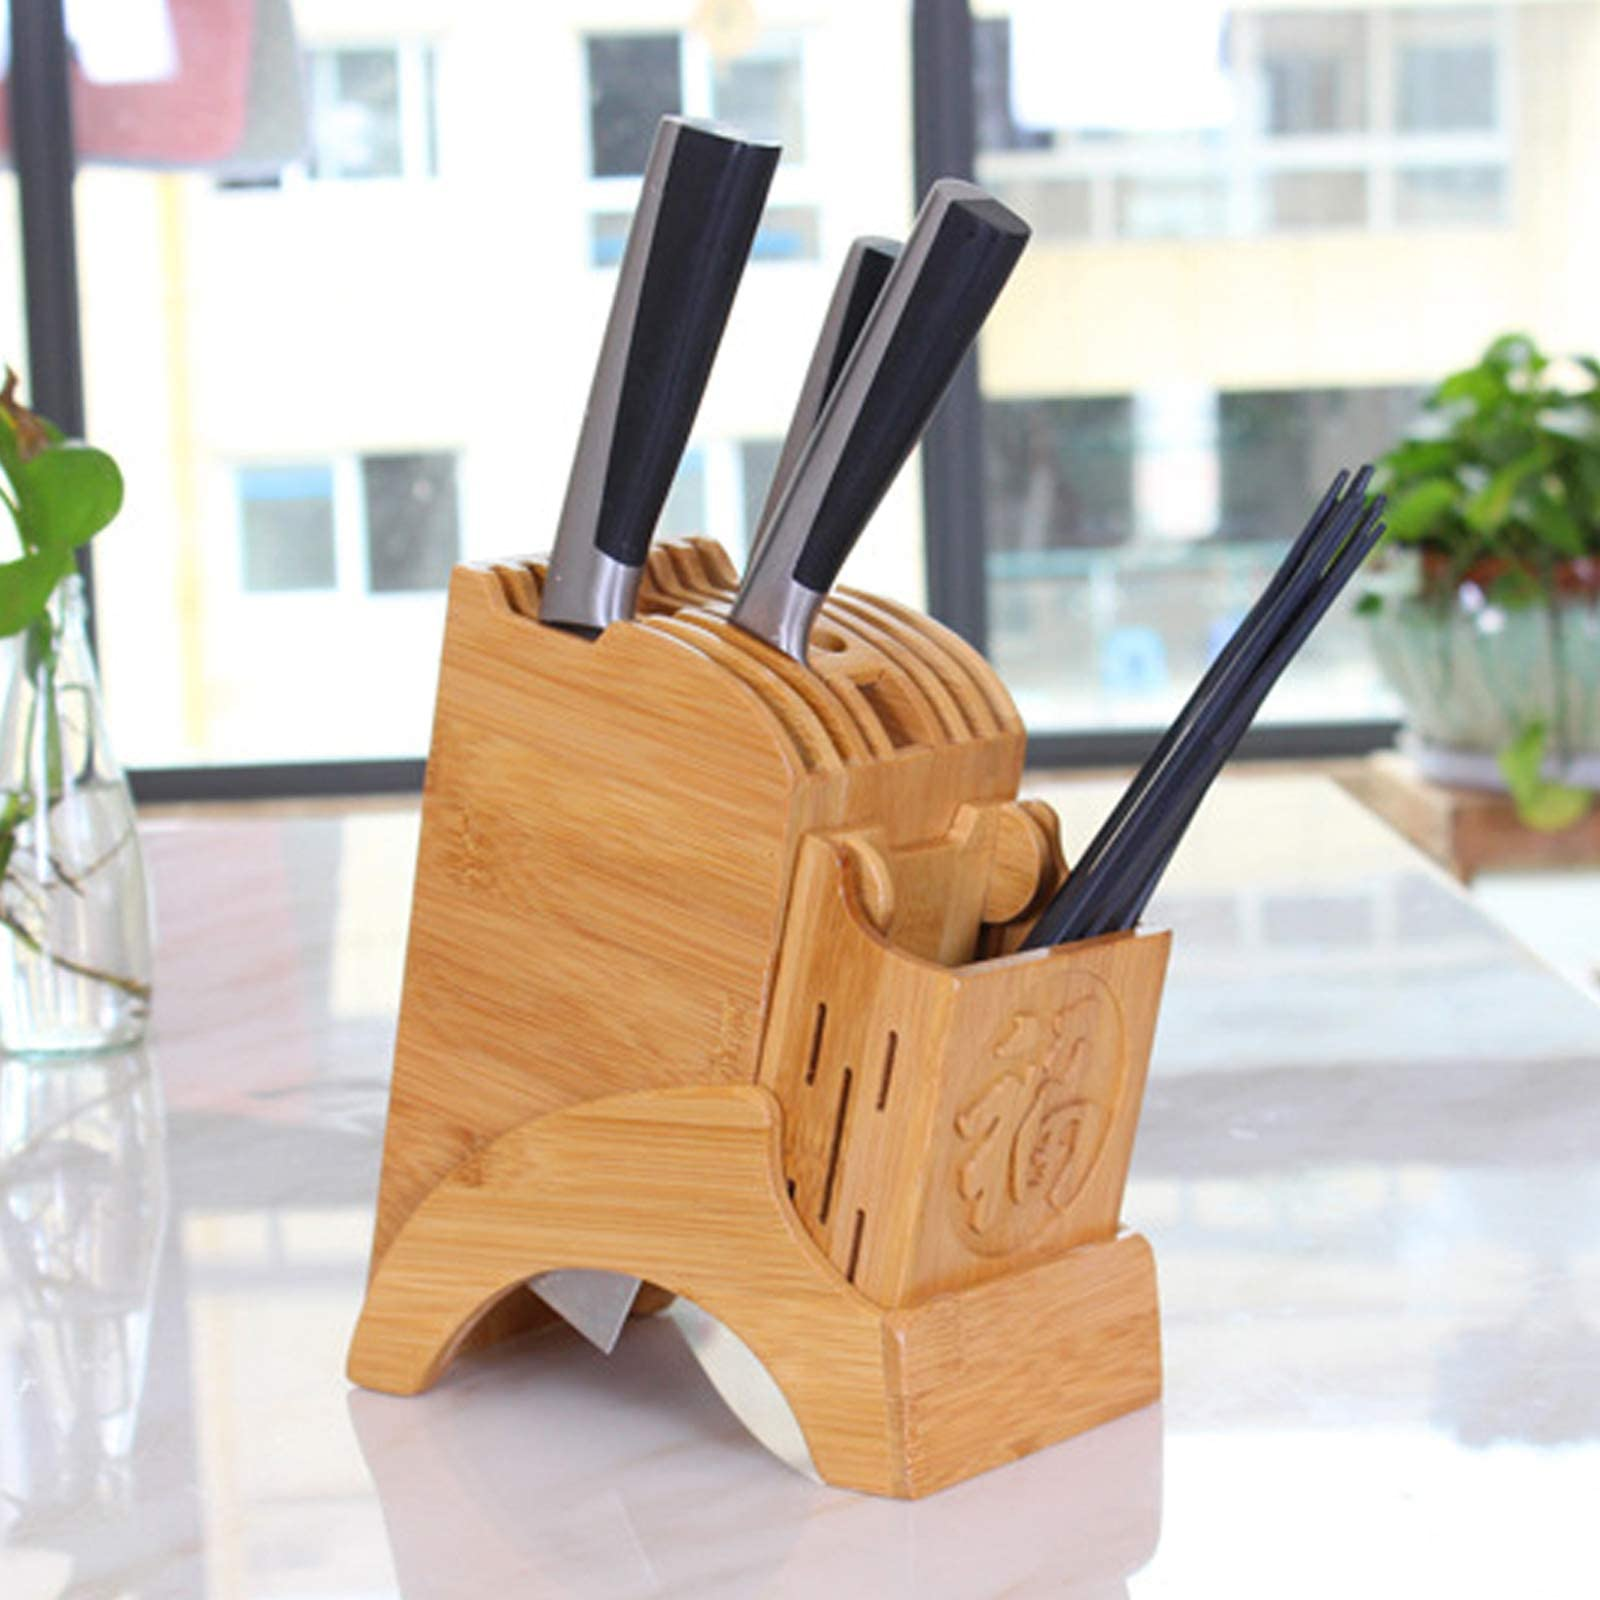 knife holder,Bamboo Knife Storage Block,kitchen knife holders without knives Hold Multiple Large Blade Knives Knife not includes knife holder 1pack yellow